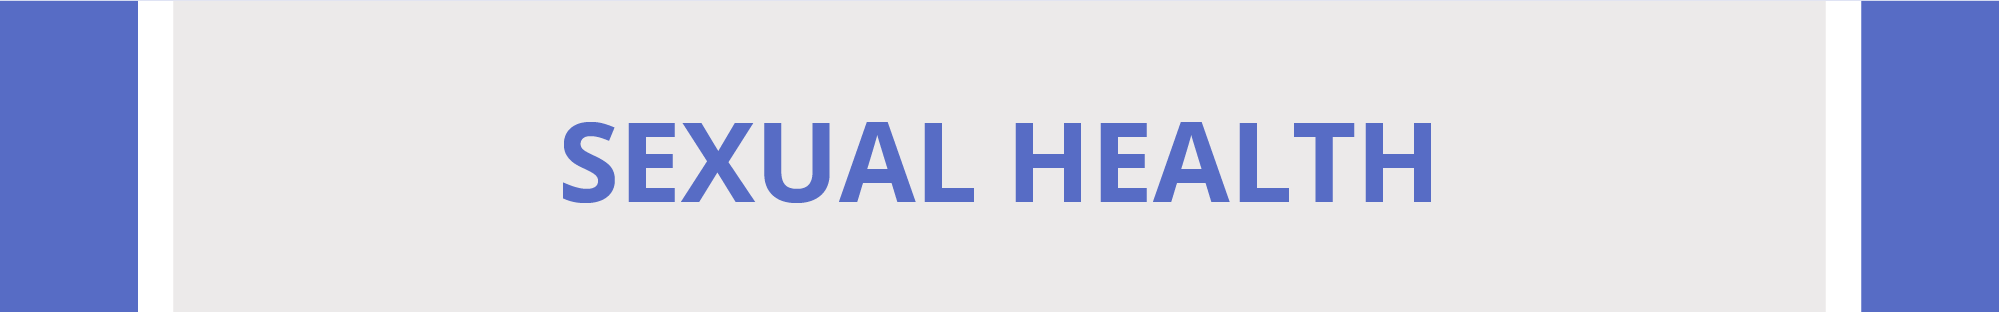 sexualhealth-banner-2018_Top.png